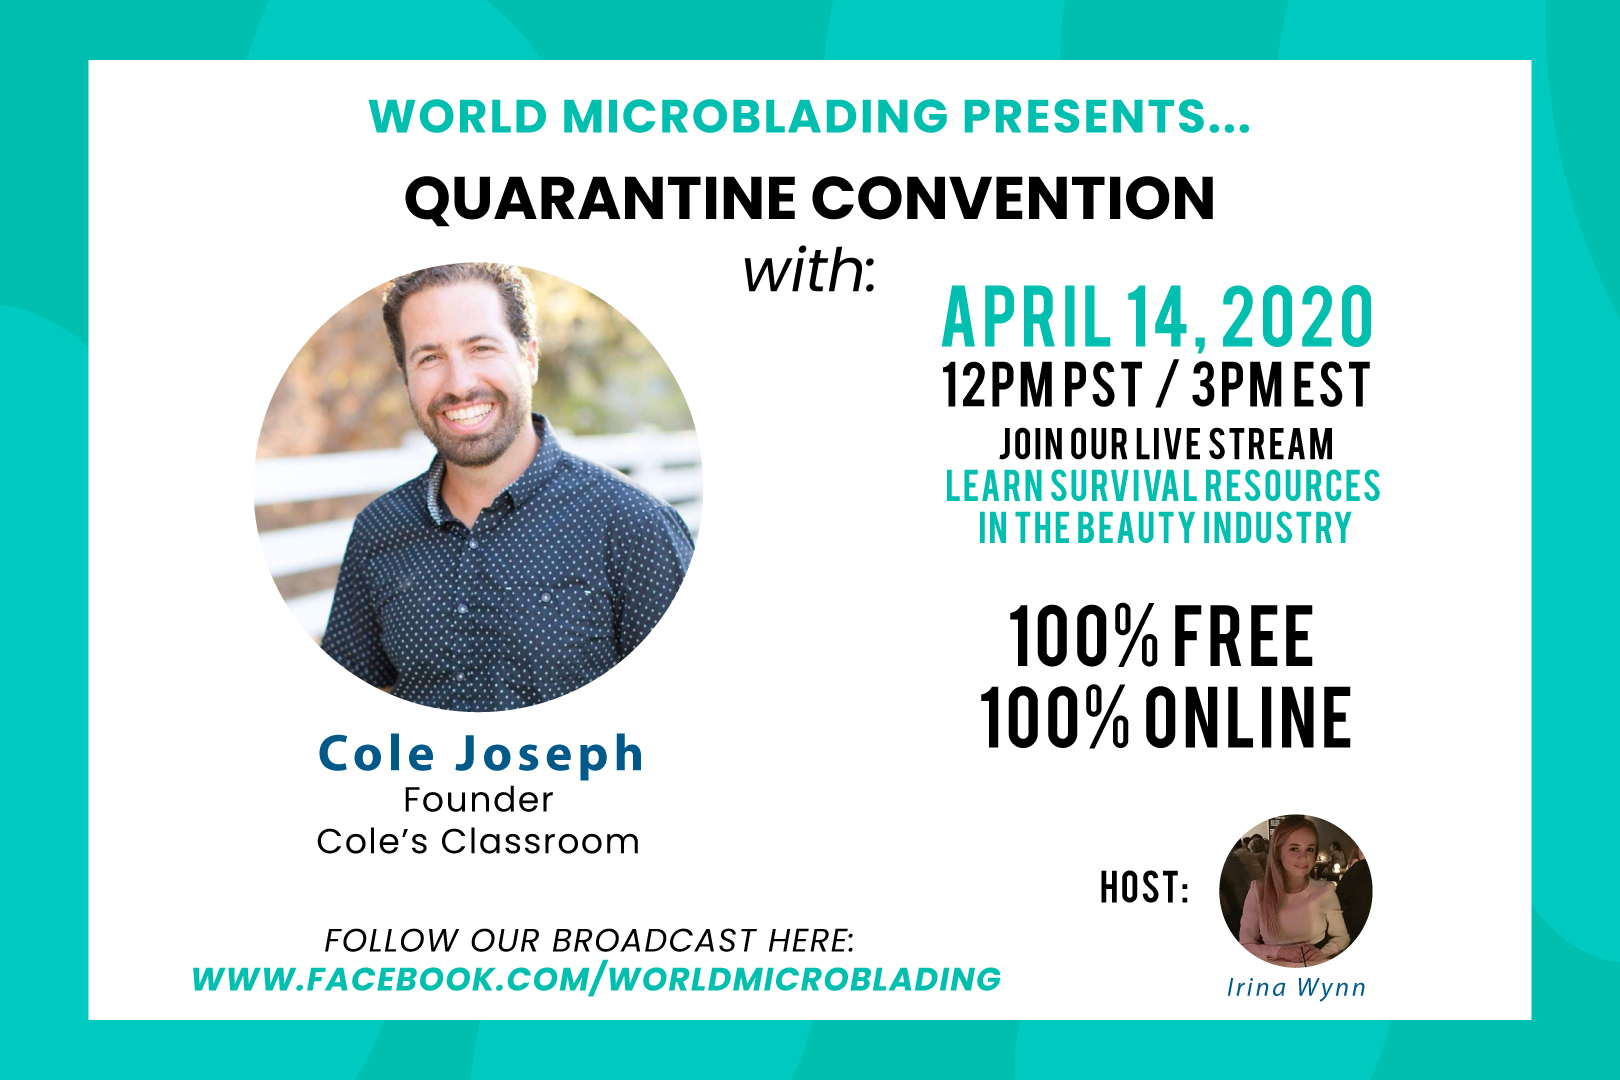 Cole Joseph: LIVE at the Quarantine Convention for the Beauty Industry